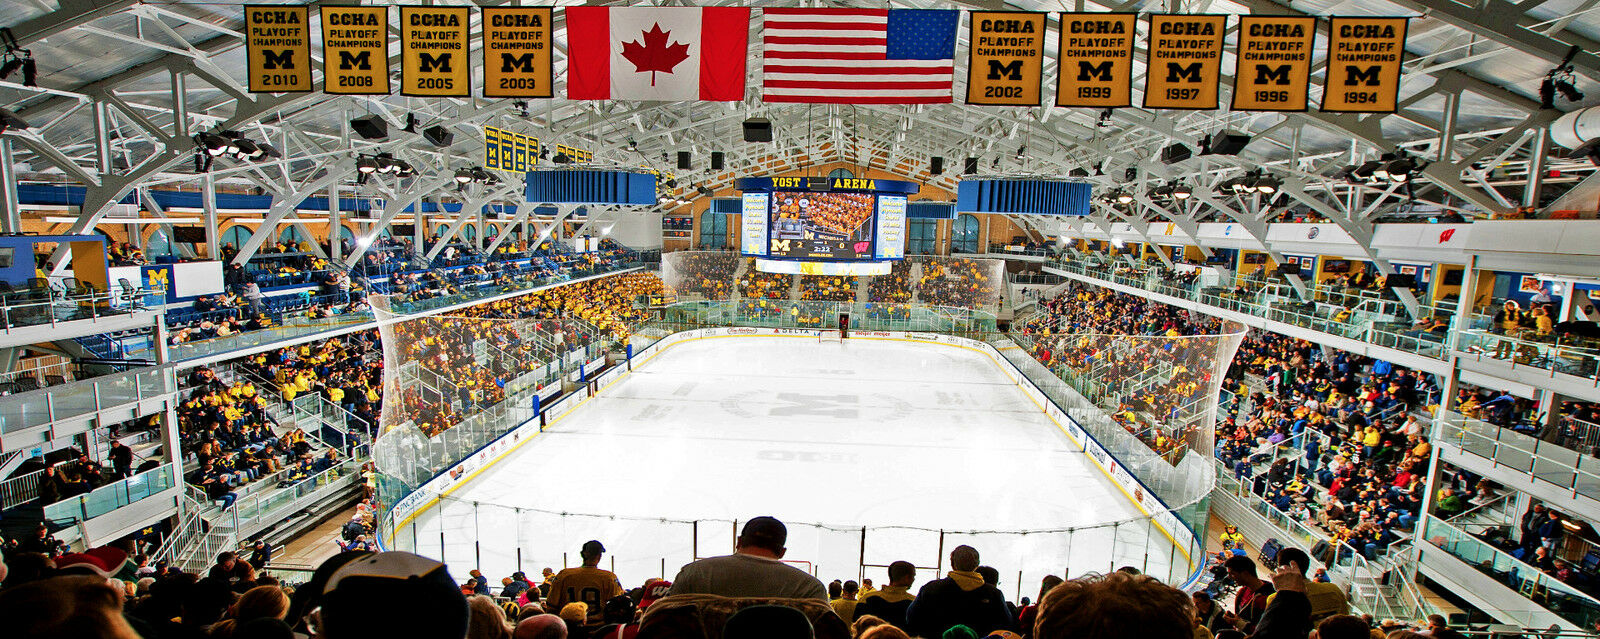 Arizona State Sun Devils at Michigan Wolverines Hockey